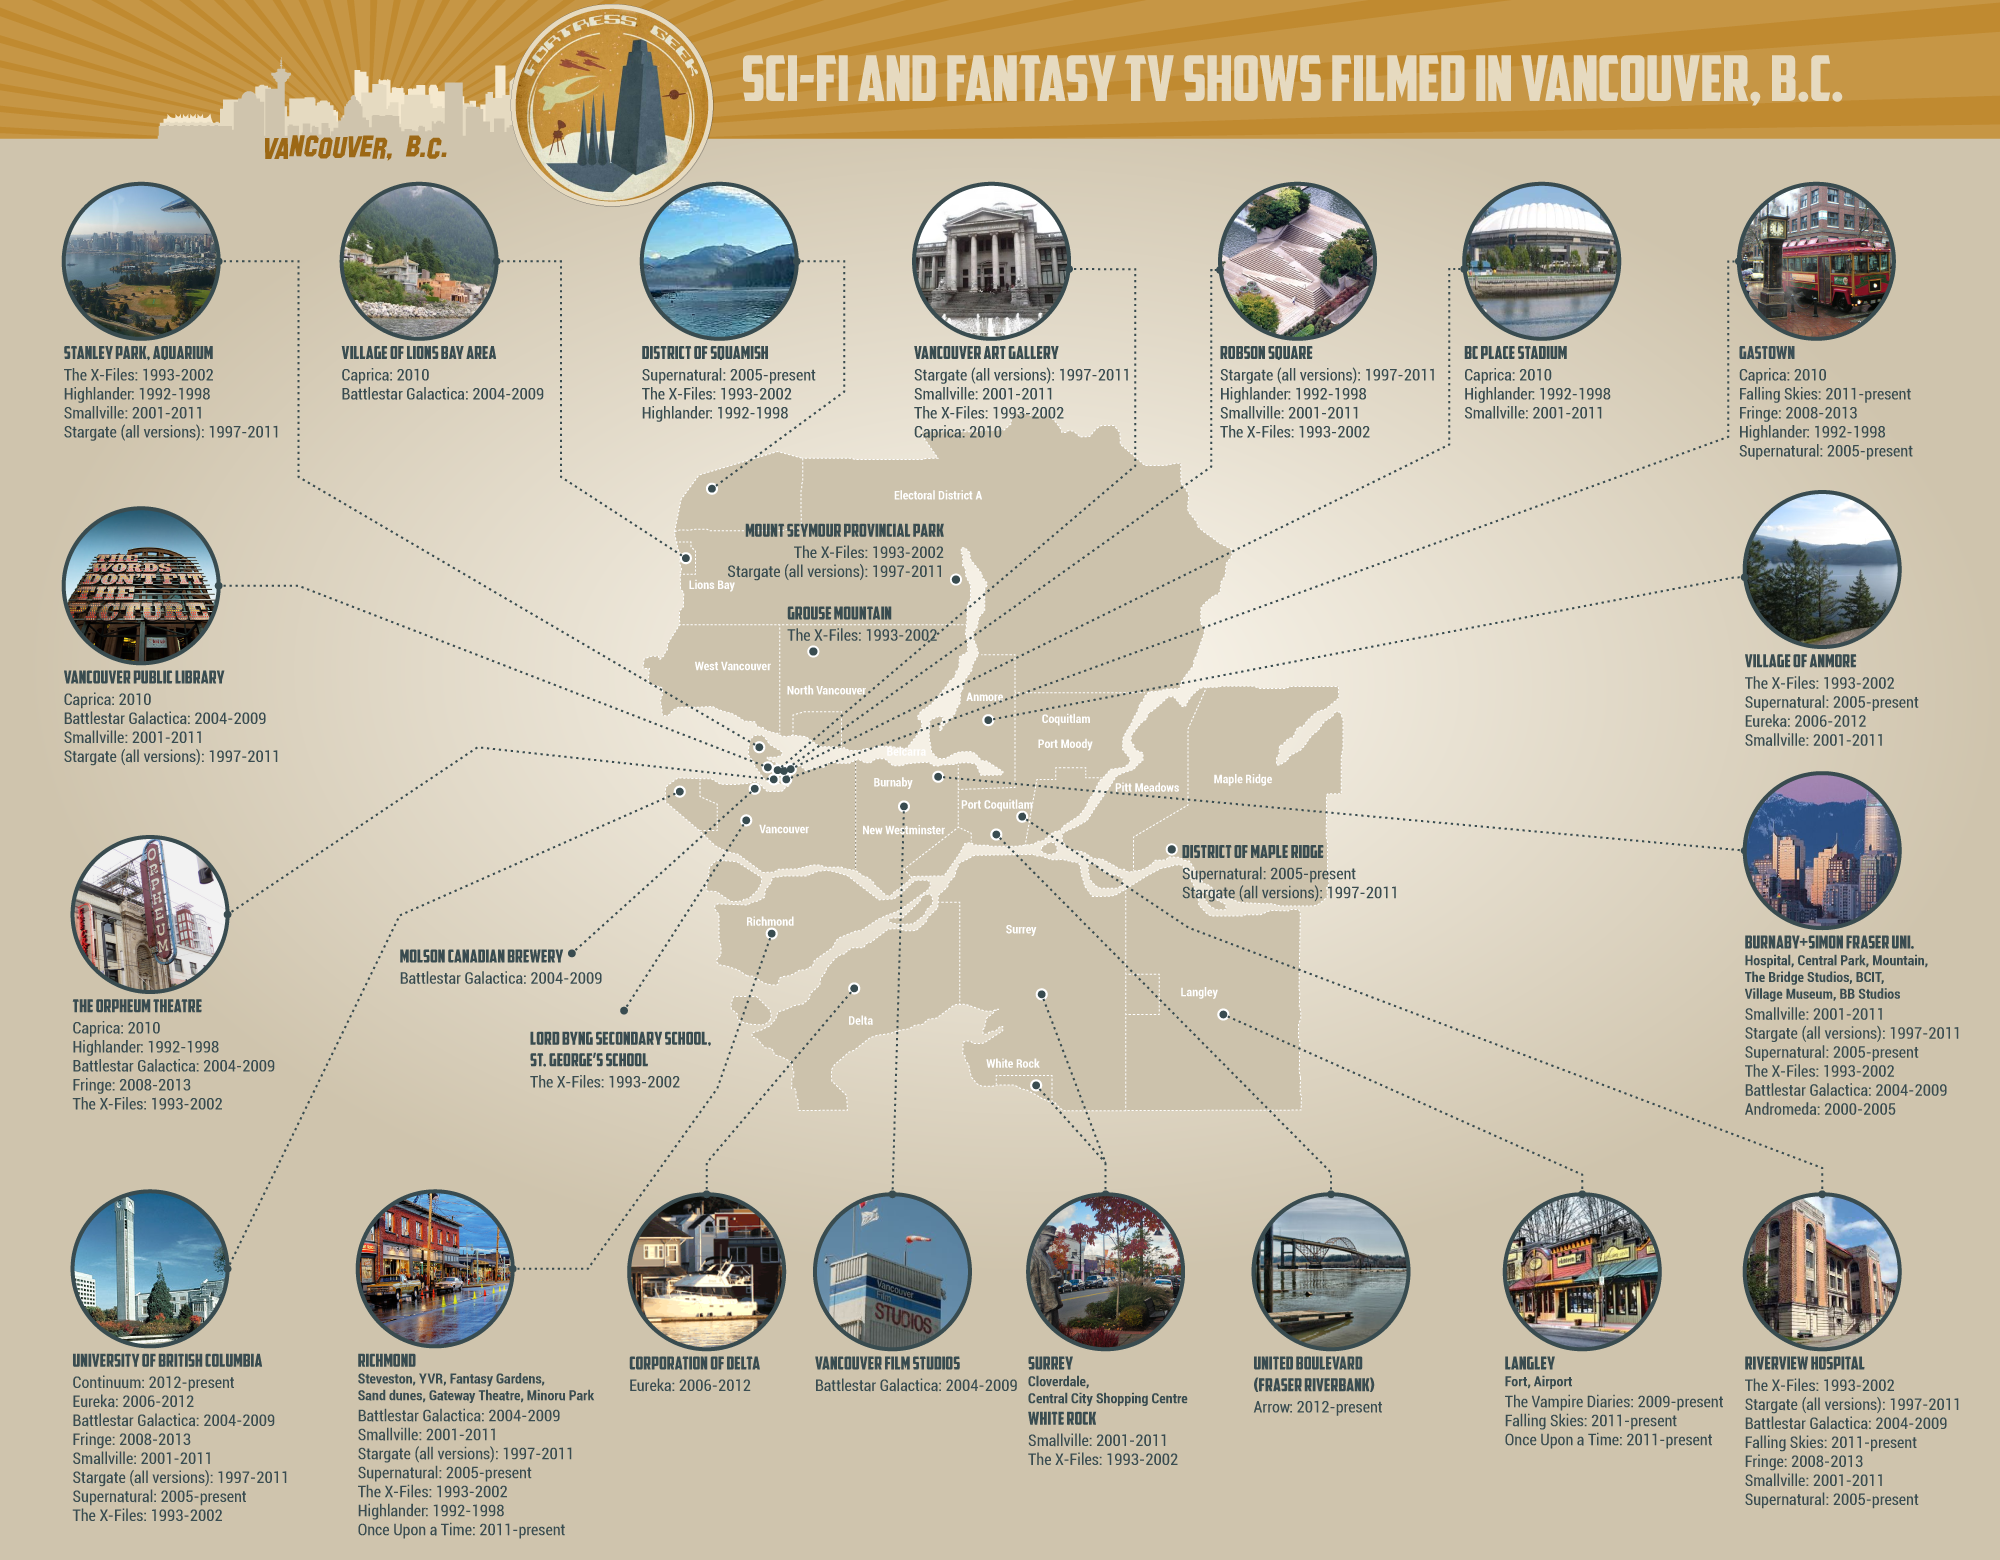 Metro Vancouver Has Been A Home And Still Is To Several Sci Fi And Fantasy Shows Check Out This Map Fantasy Tv Shows Vancouver Infographic Marketing